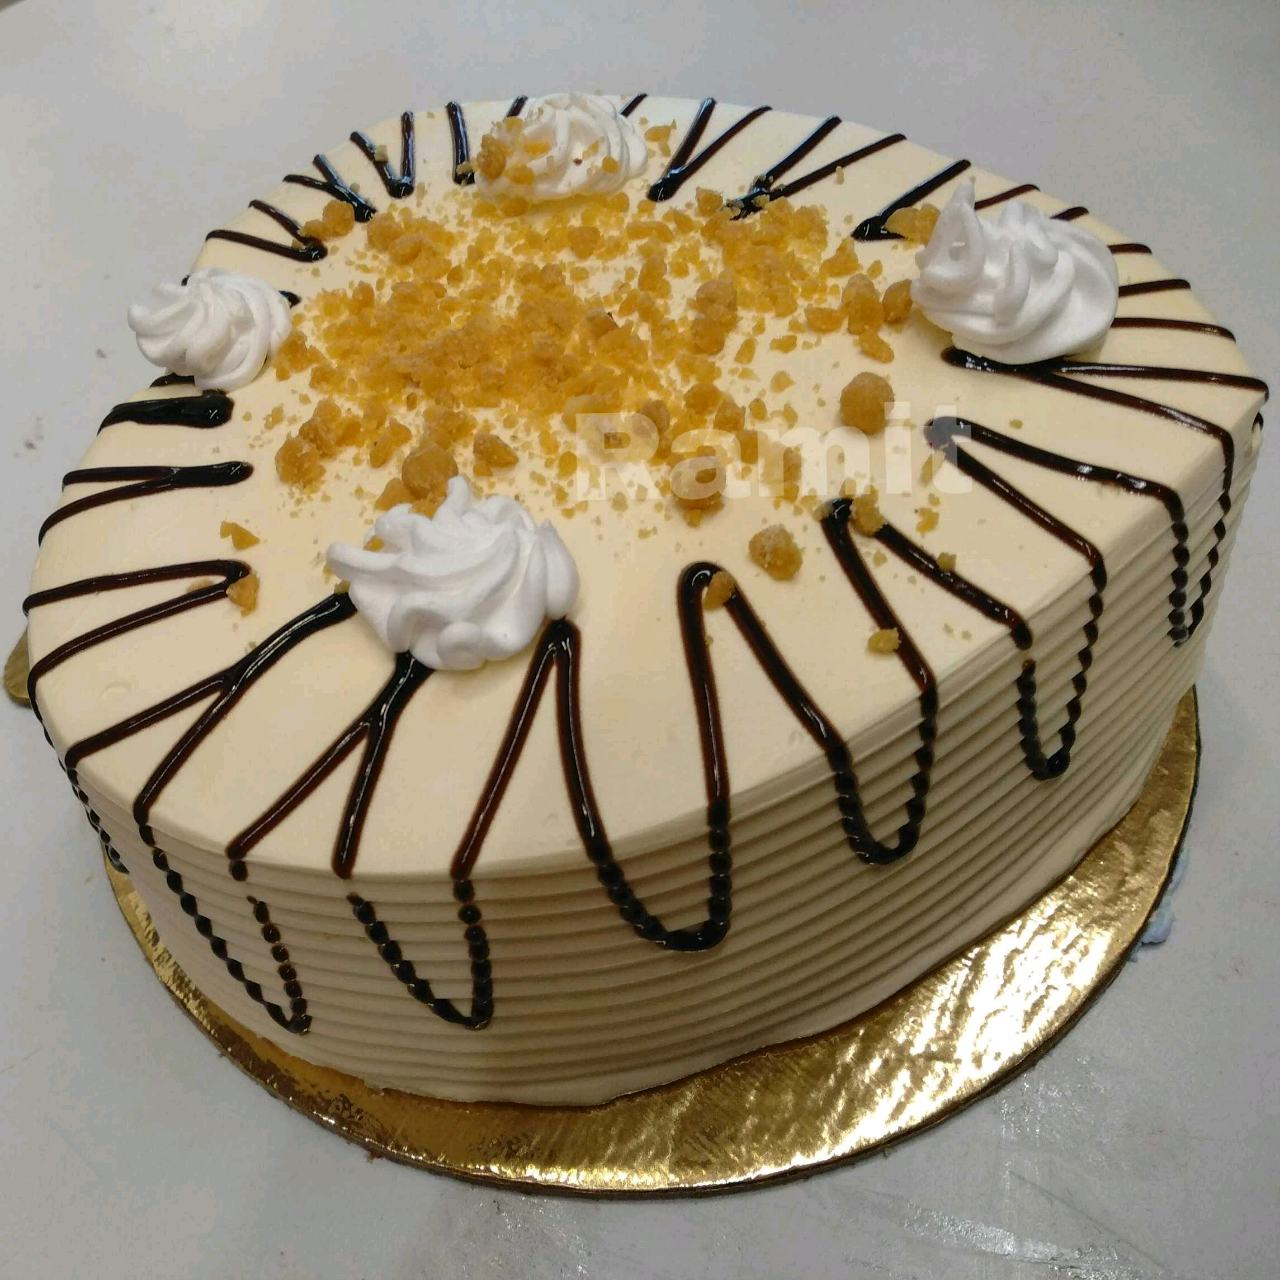 Caramel Crunch Cake Topped With Chocolate Jelly